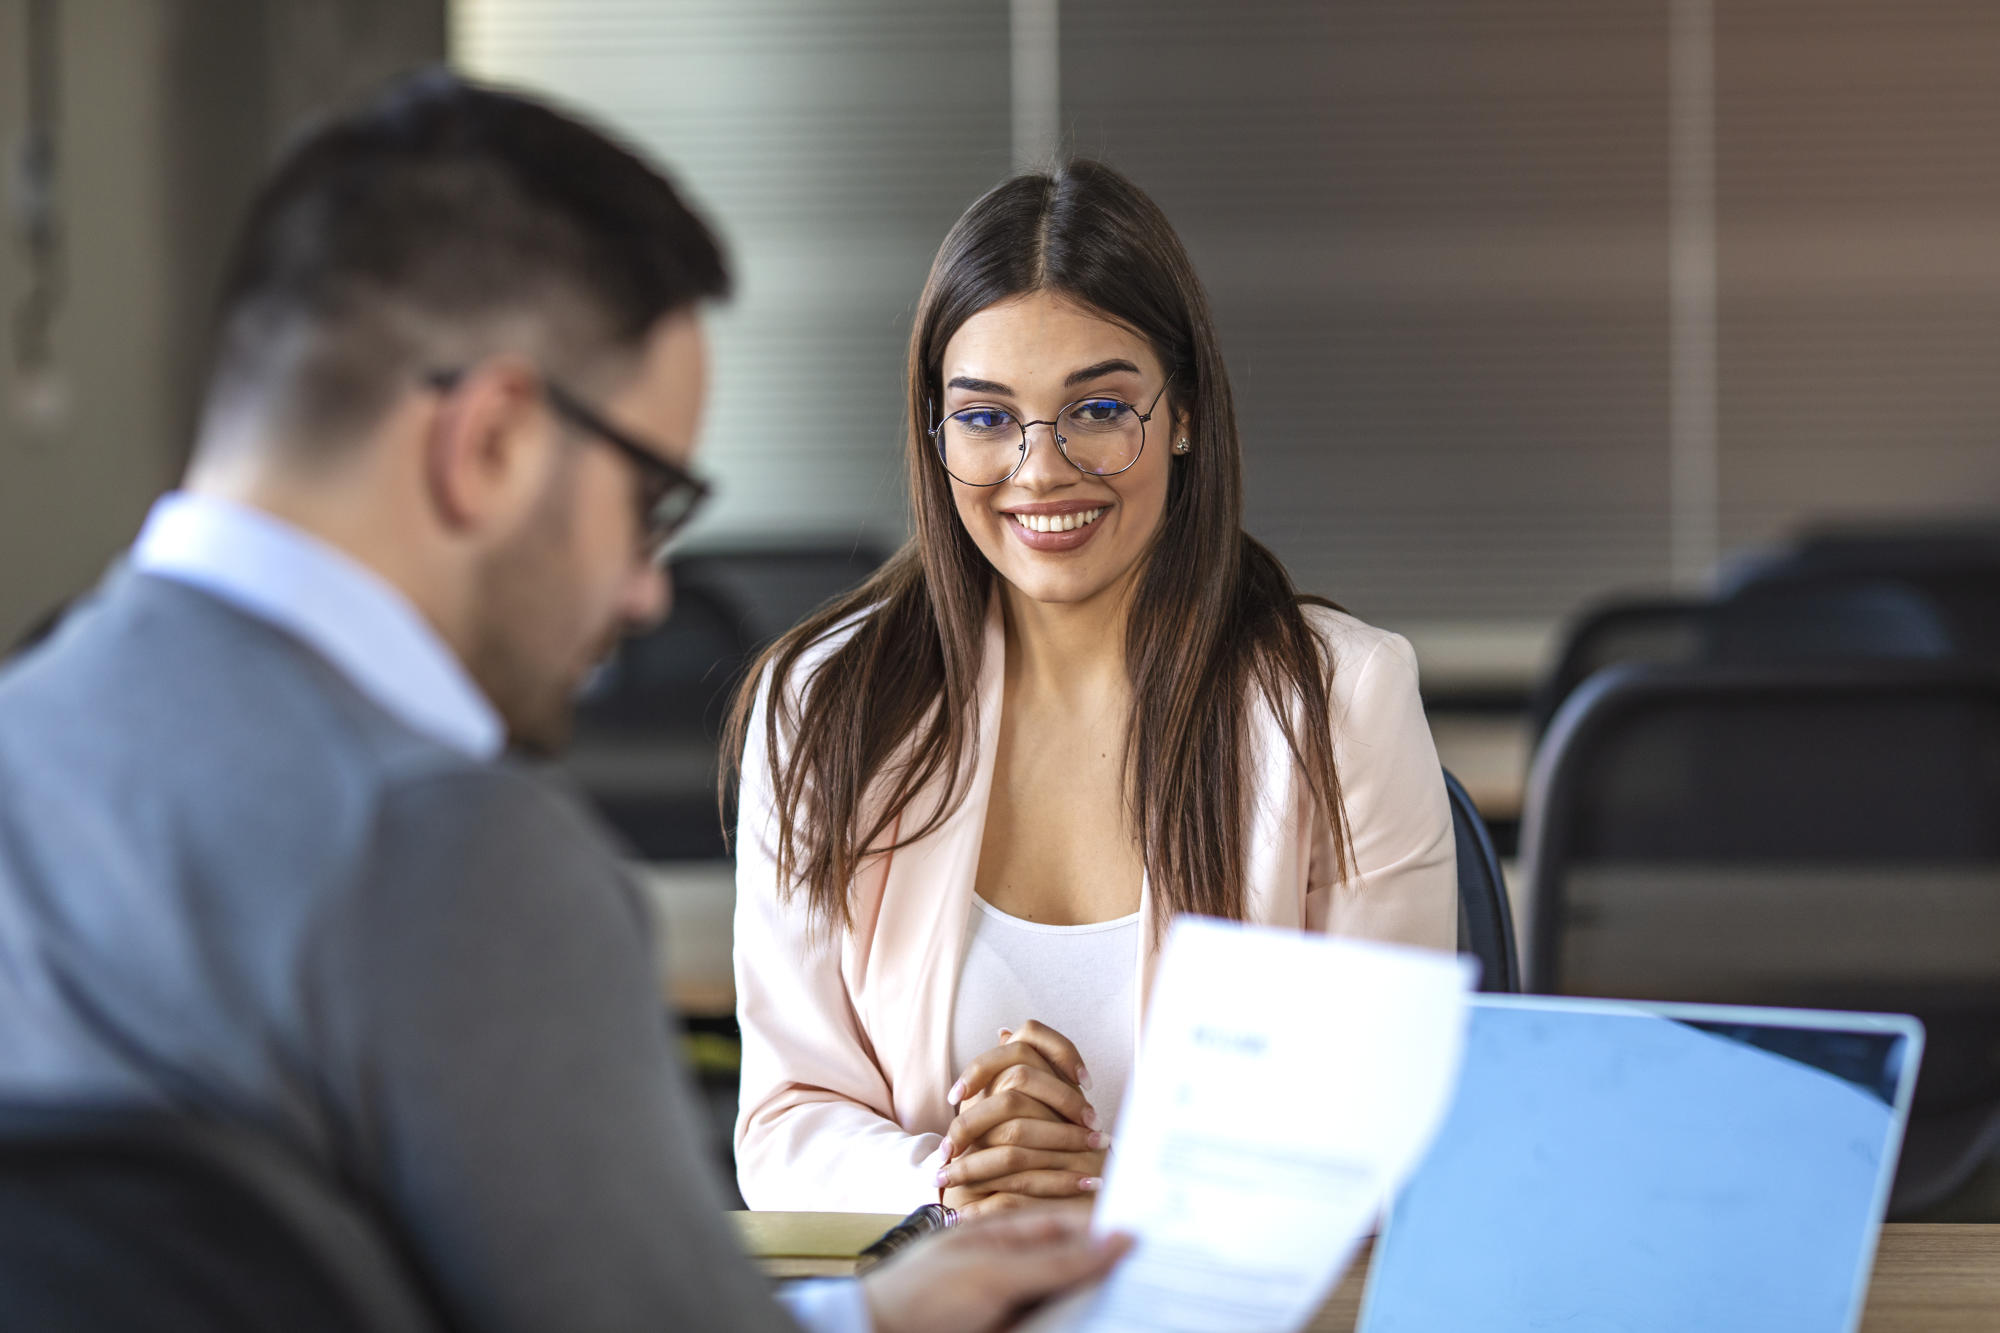 12 things you need to say in your job interview